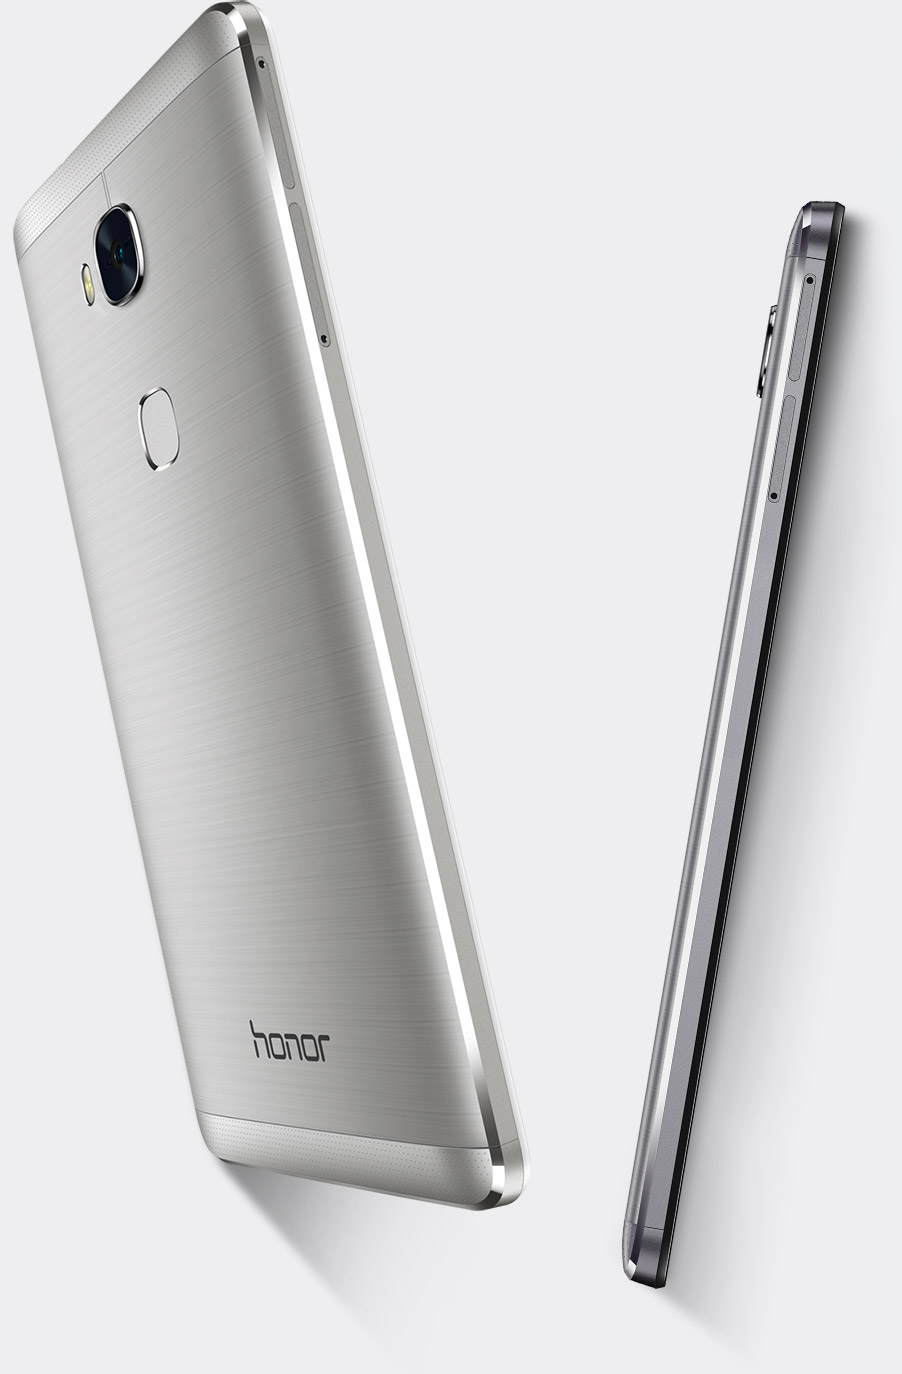 Huawei Honor 5X launched in India for Rs. 12999